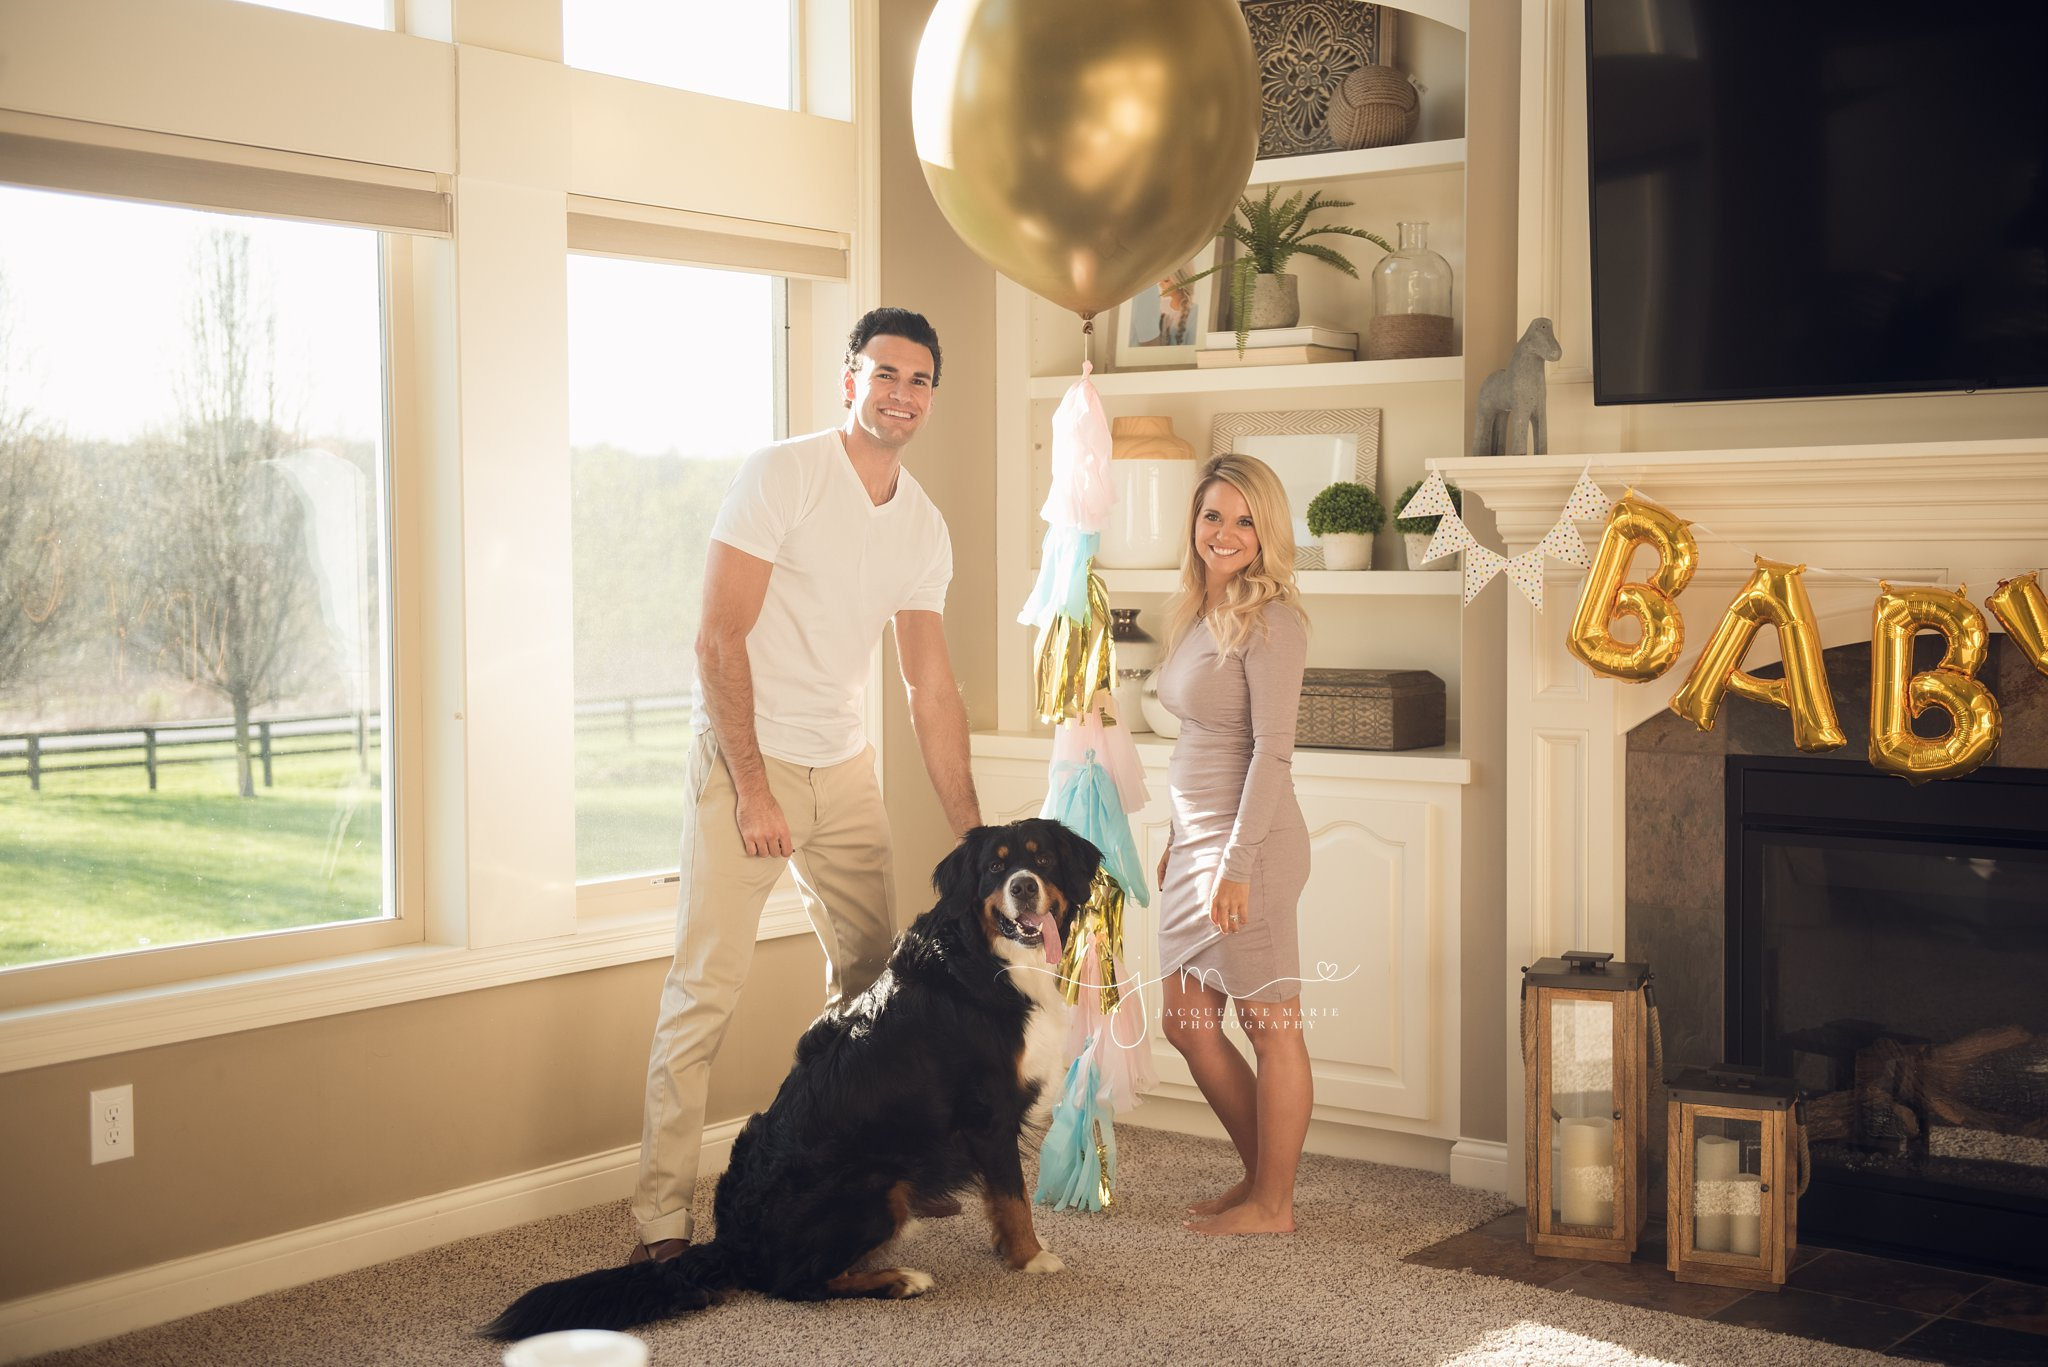 gender reveal party | gender reveal photography | columbus ohio gender reveal photographer